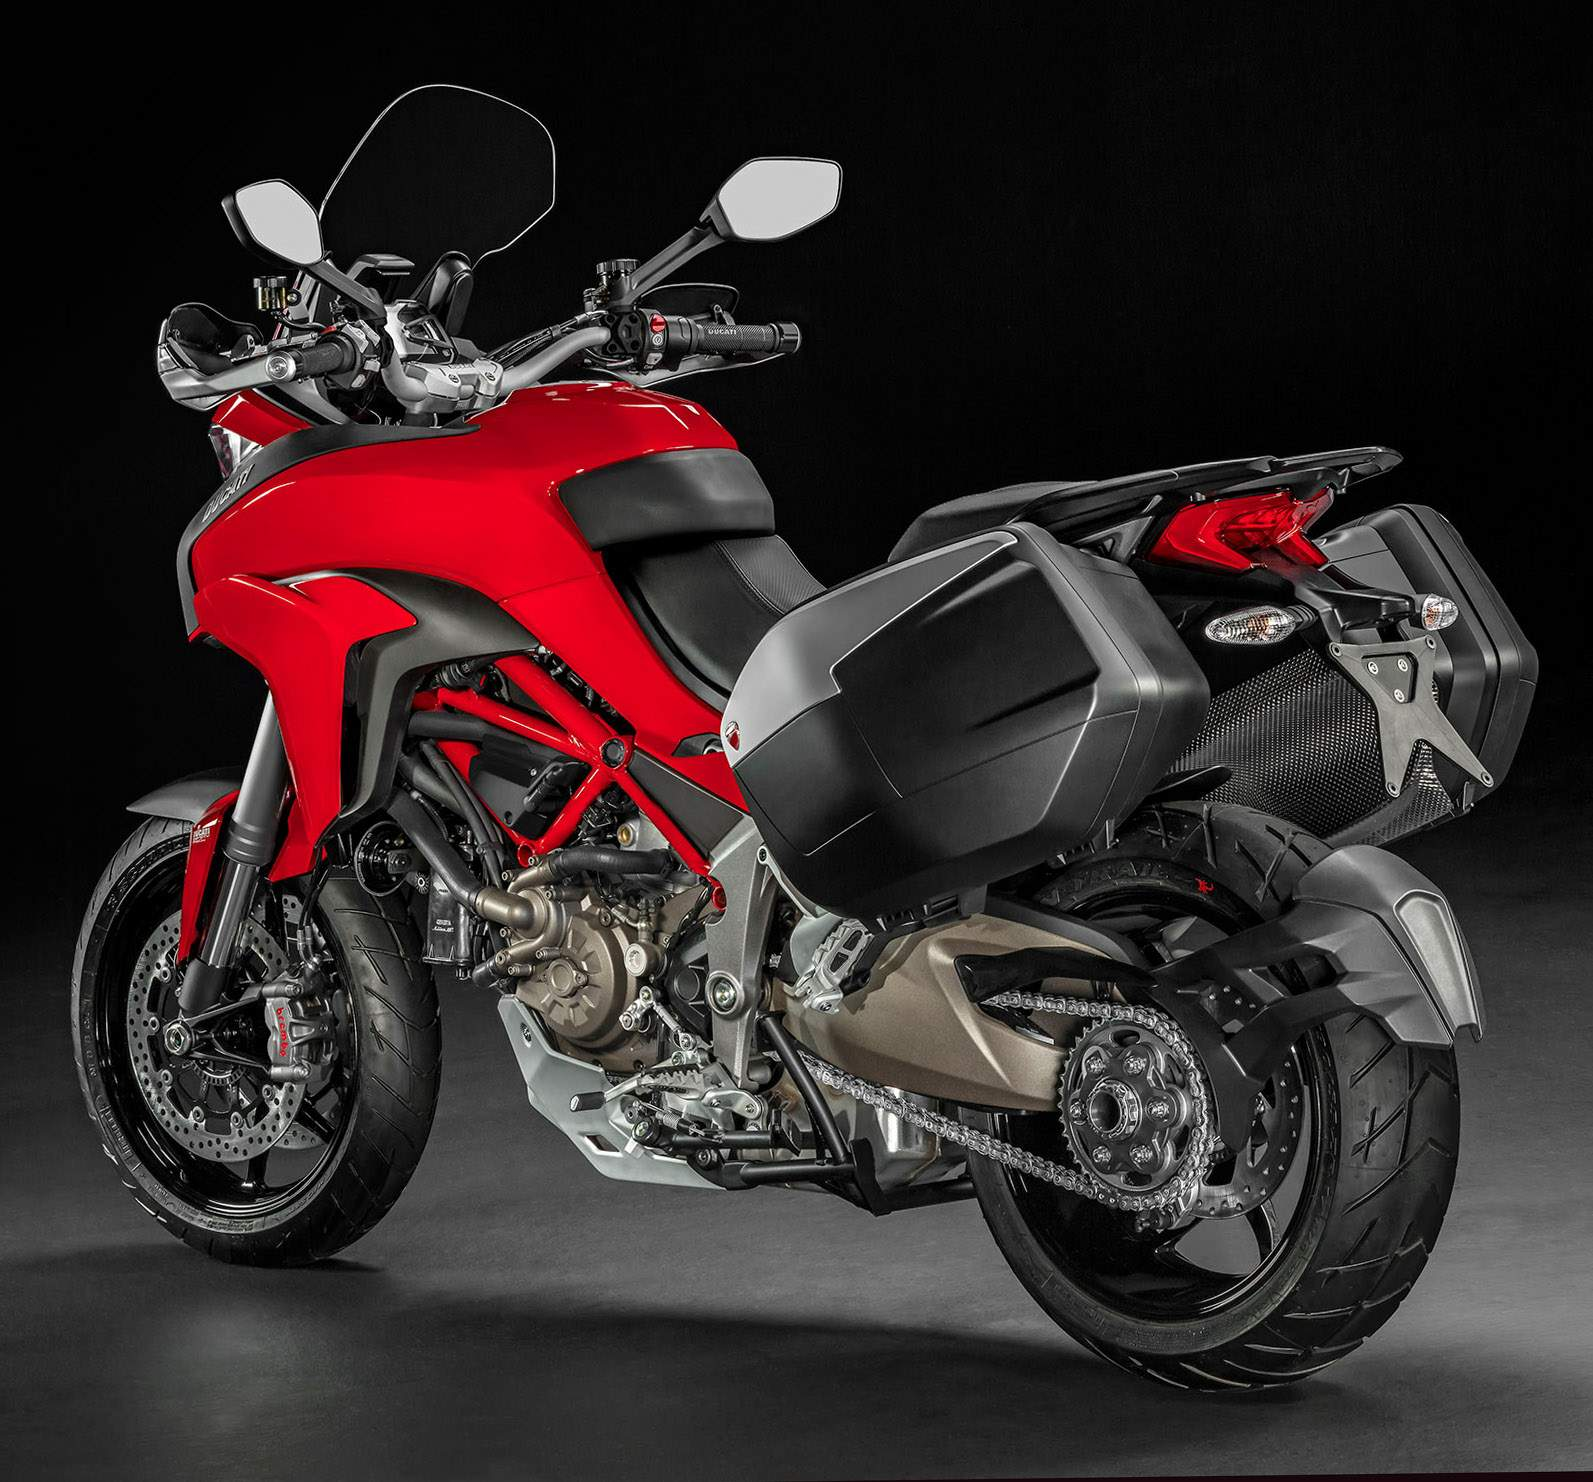 Ducati Multistrada 1200 S DVT For Sale Specifications, Price and Images